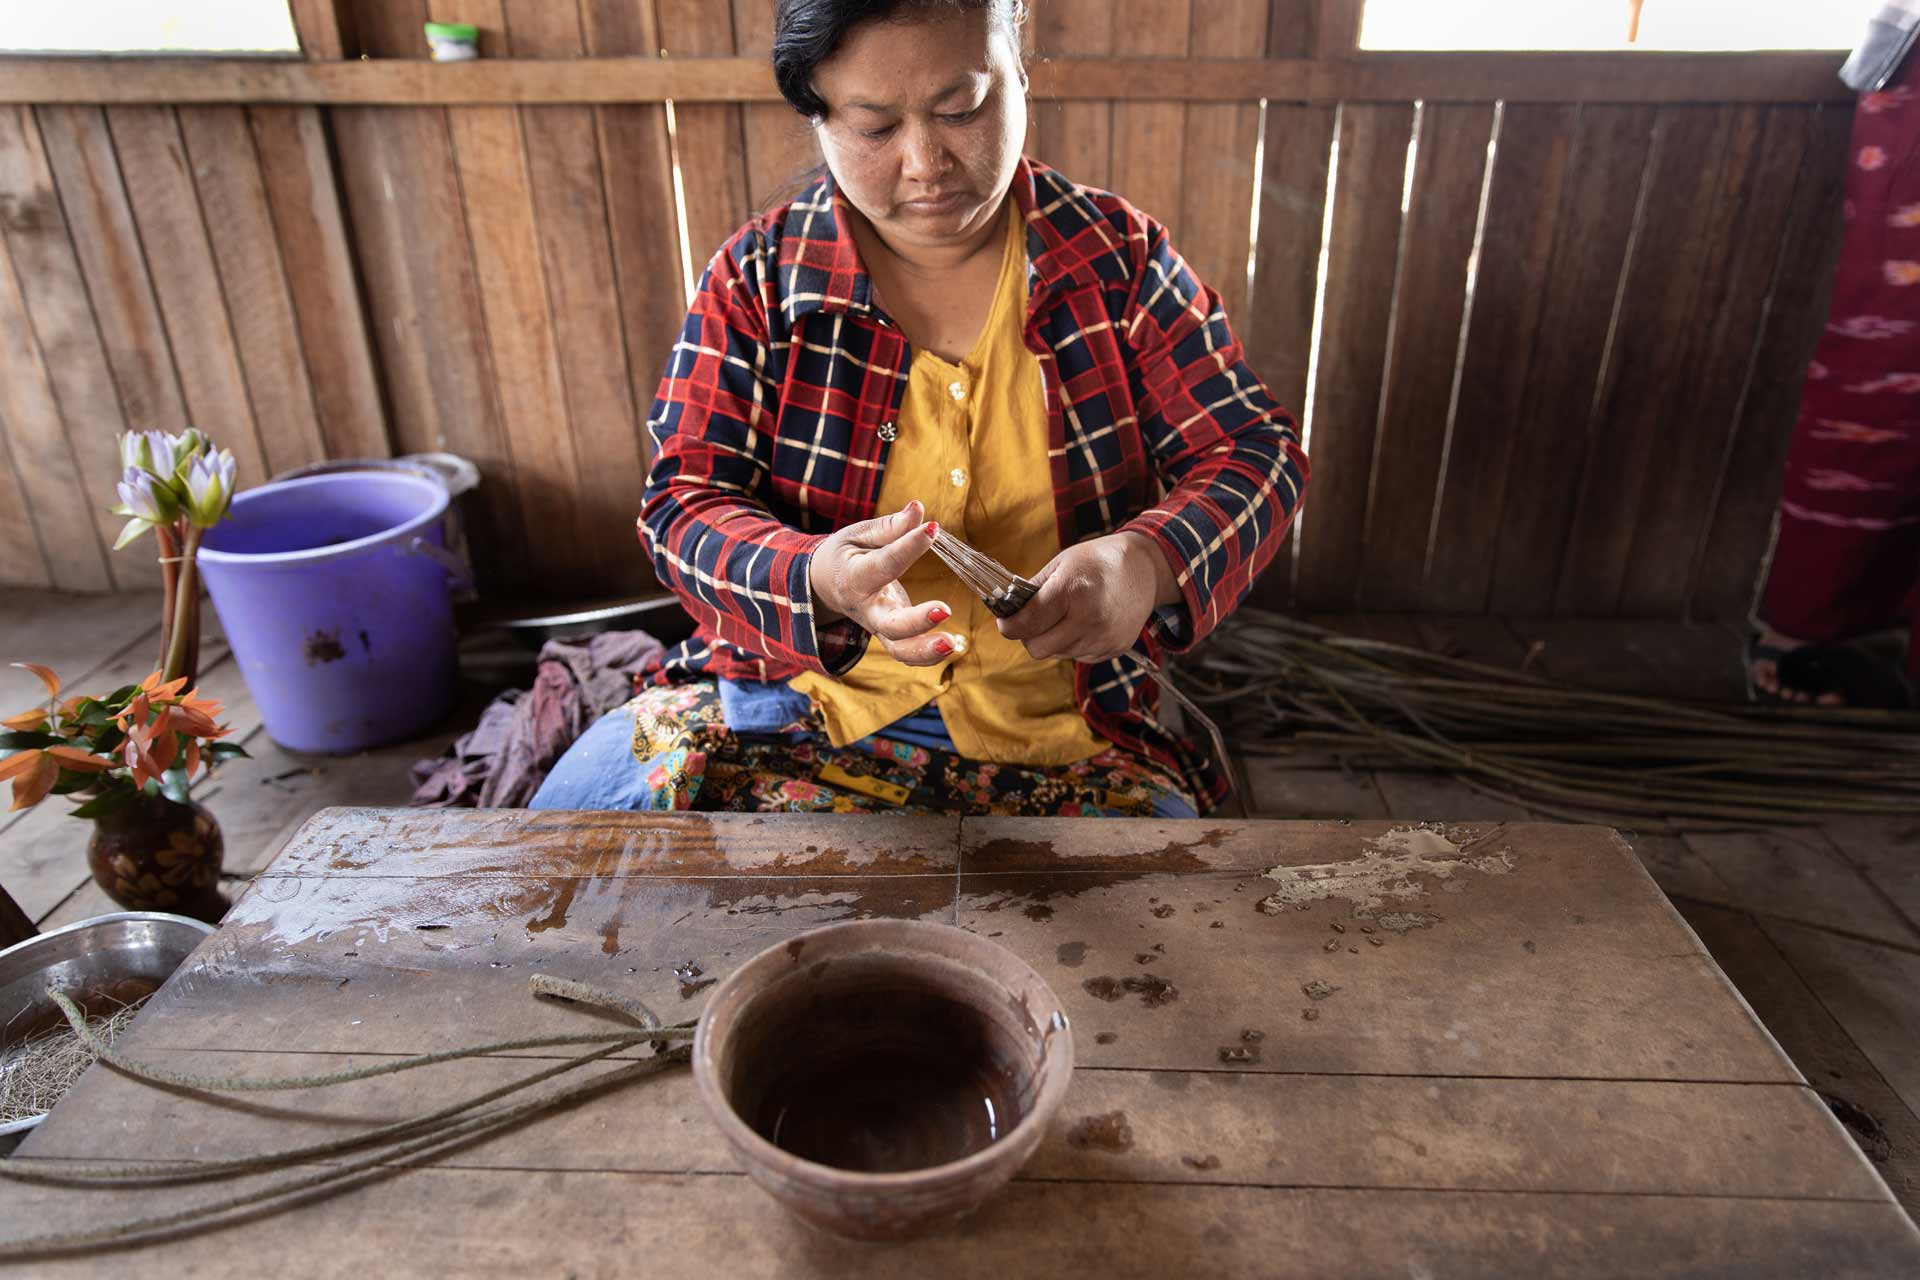 Handcraft lotus flower creations around Inle Lake